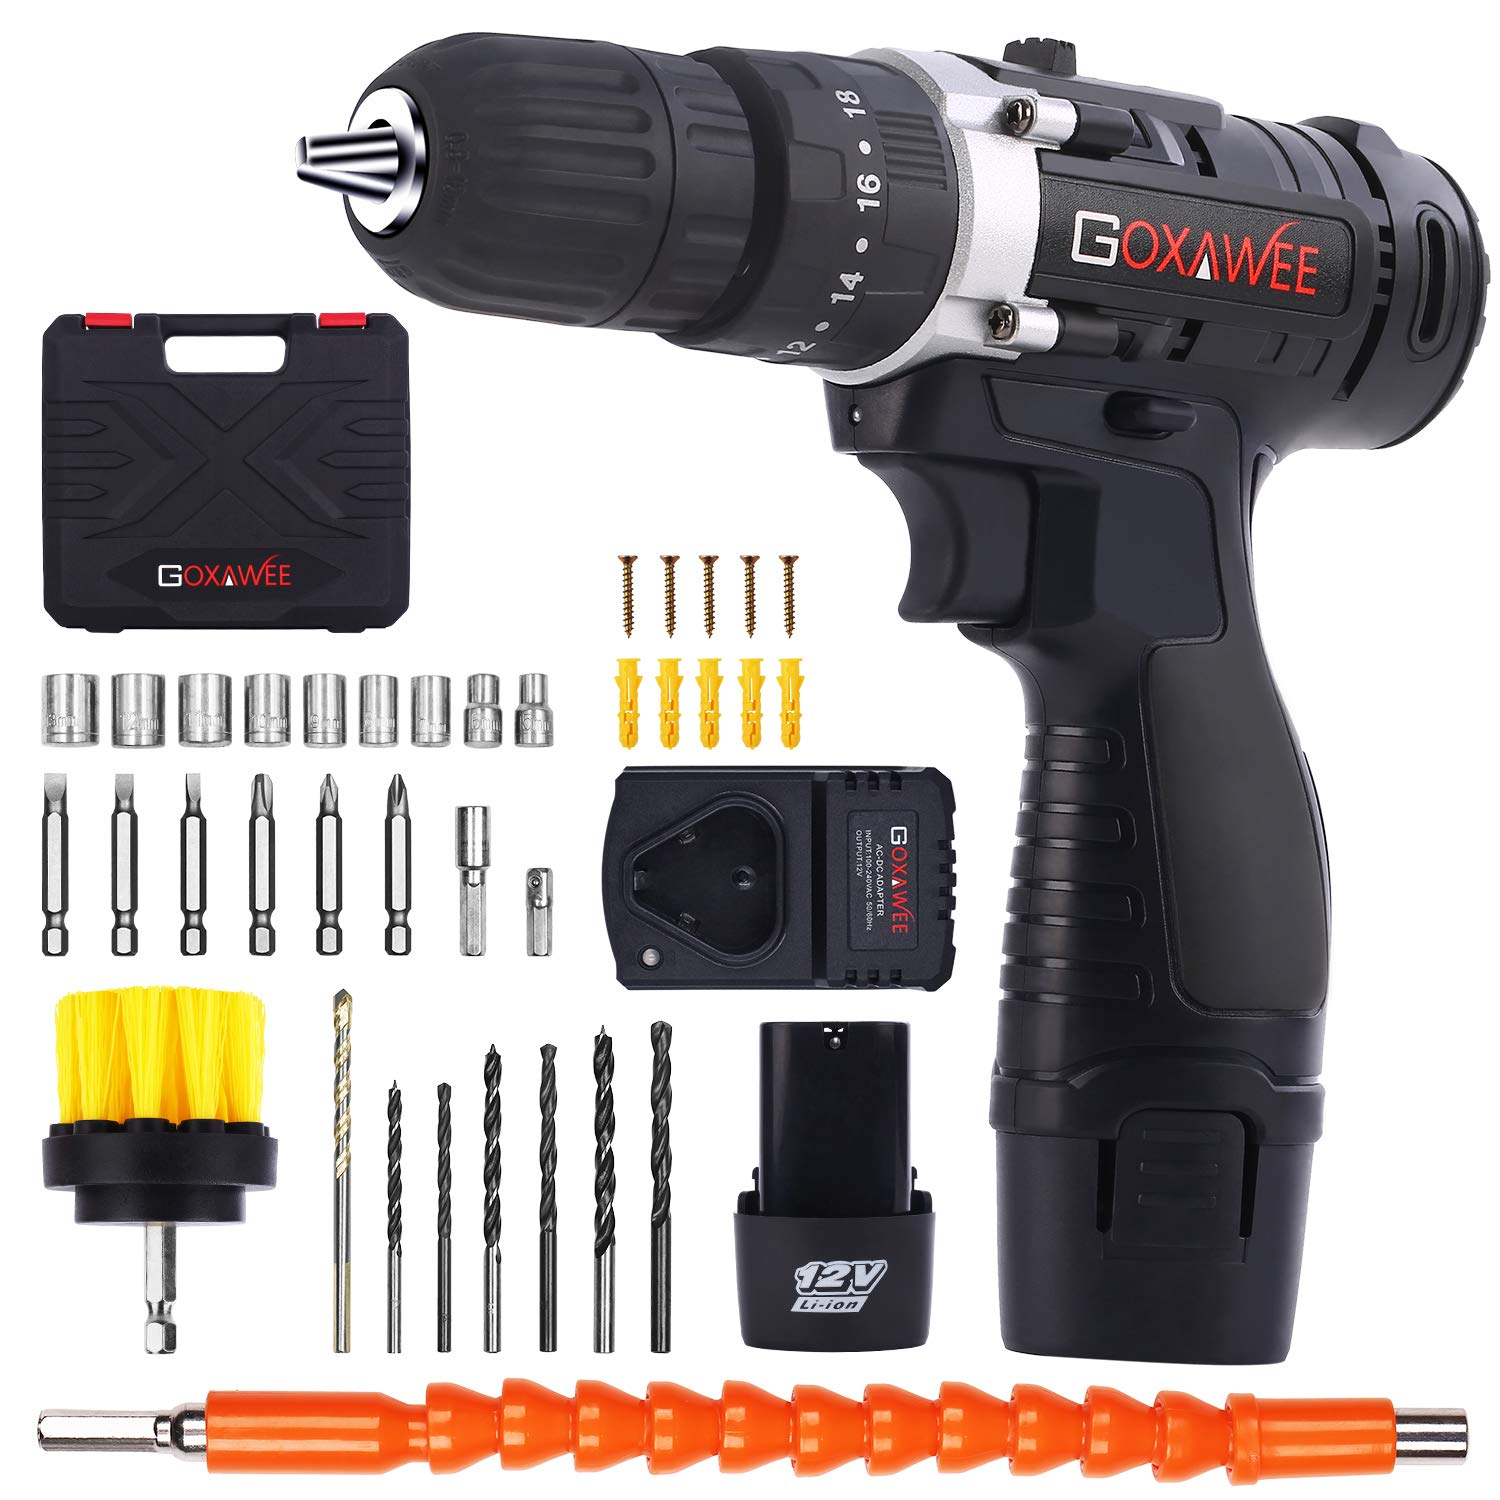 Cordless Drill with 2 Batteries – GOXAWEE Electric Screw Driver Set 100pcs with Hammer Function 12V, 18 3 Torque Setting, 30Nm, 3 8 inch Auto Chuck, 2-Speed for Home Improvement DIY Project